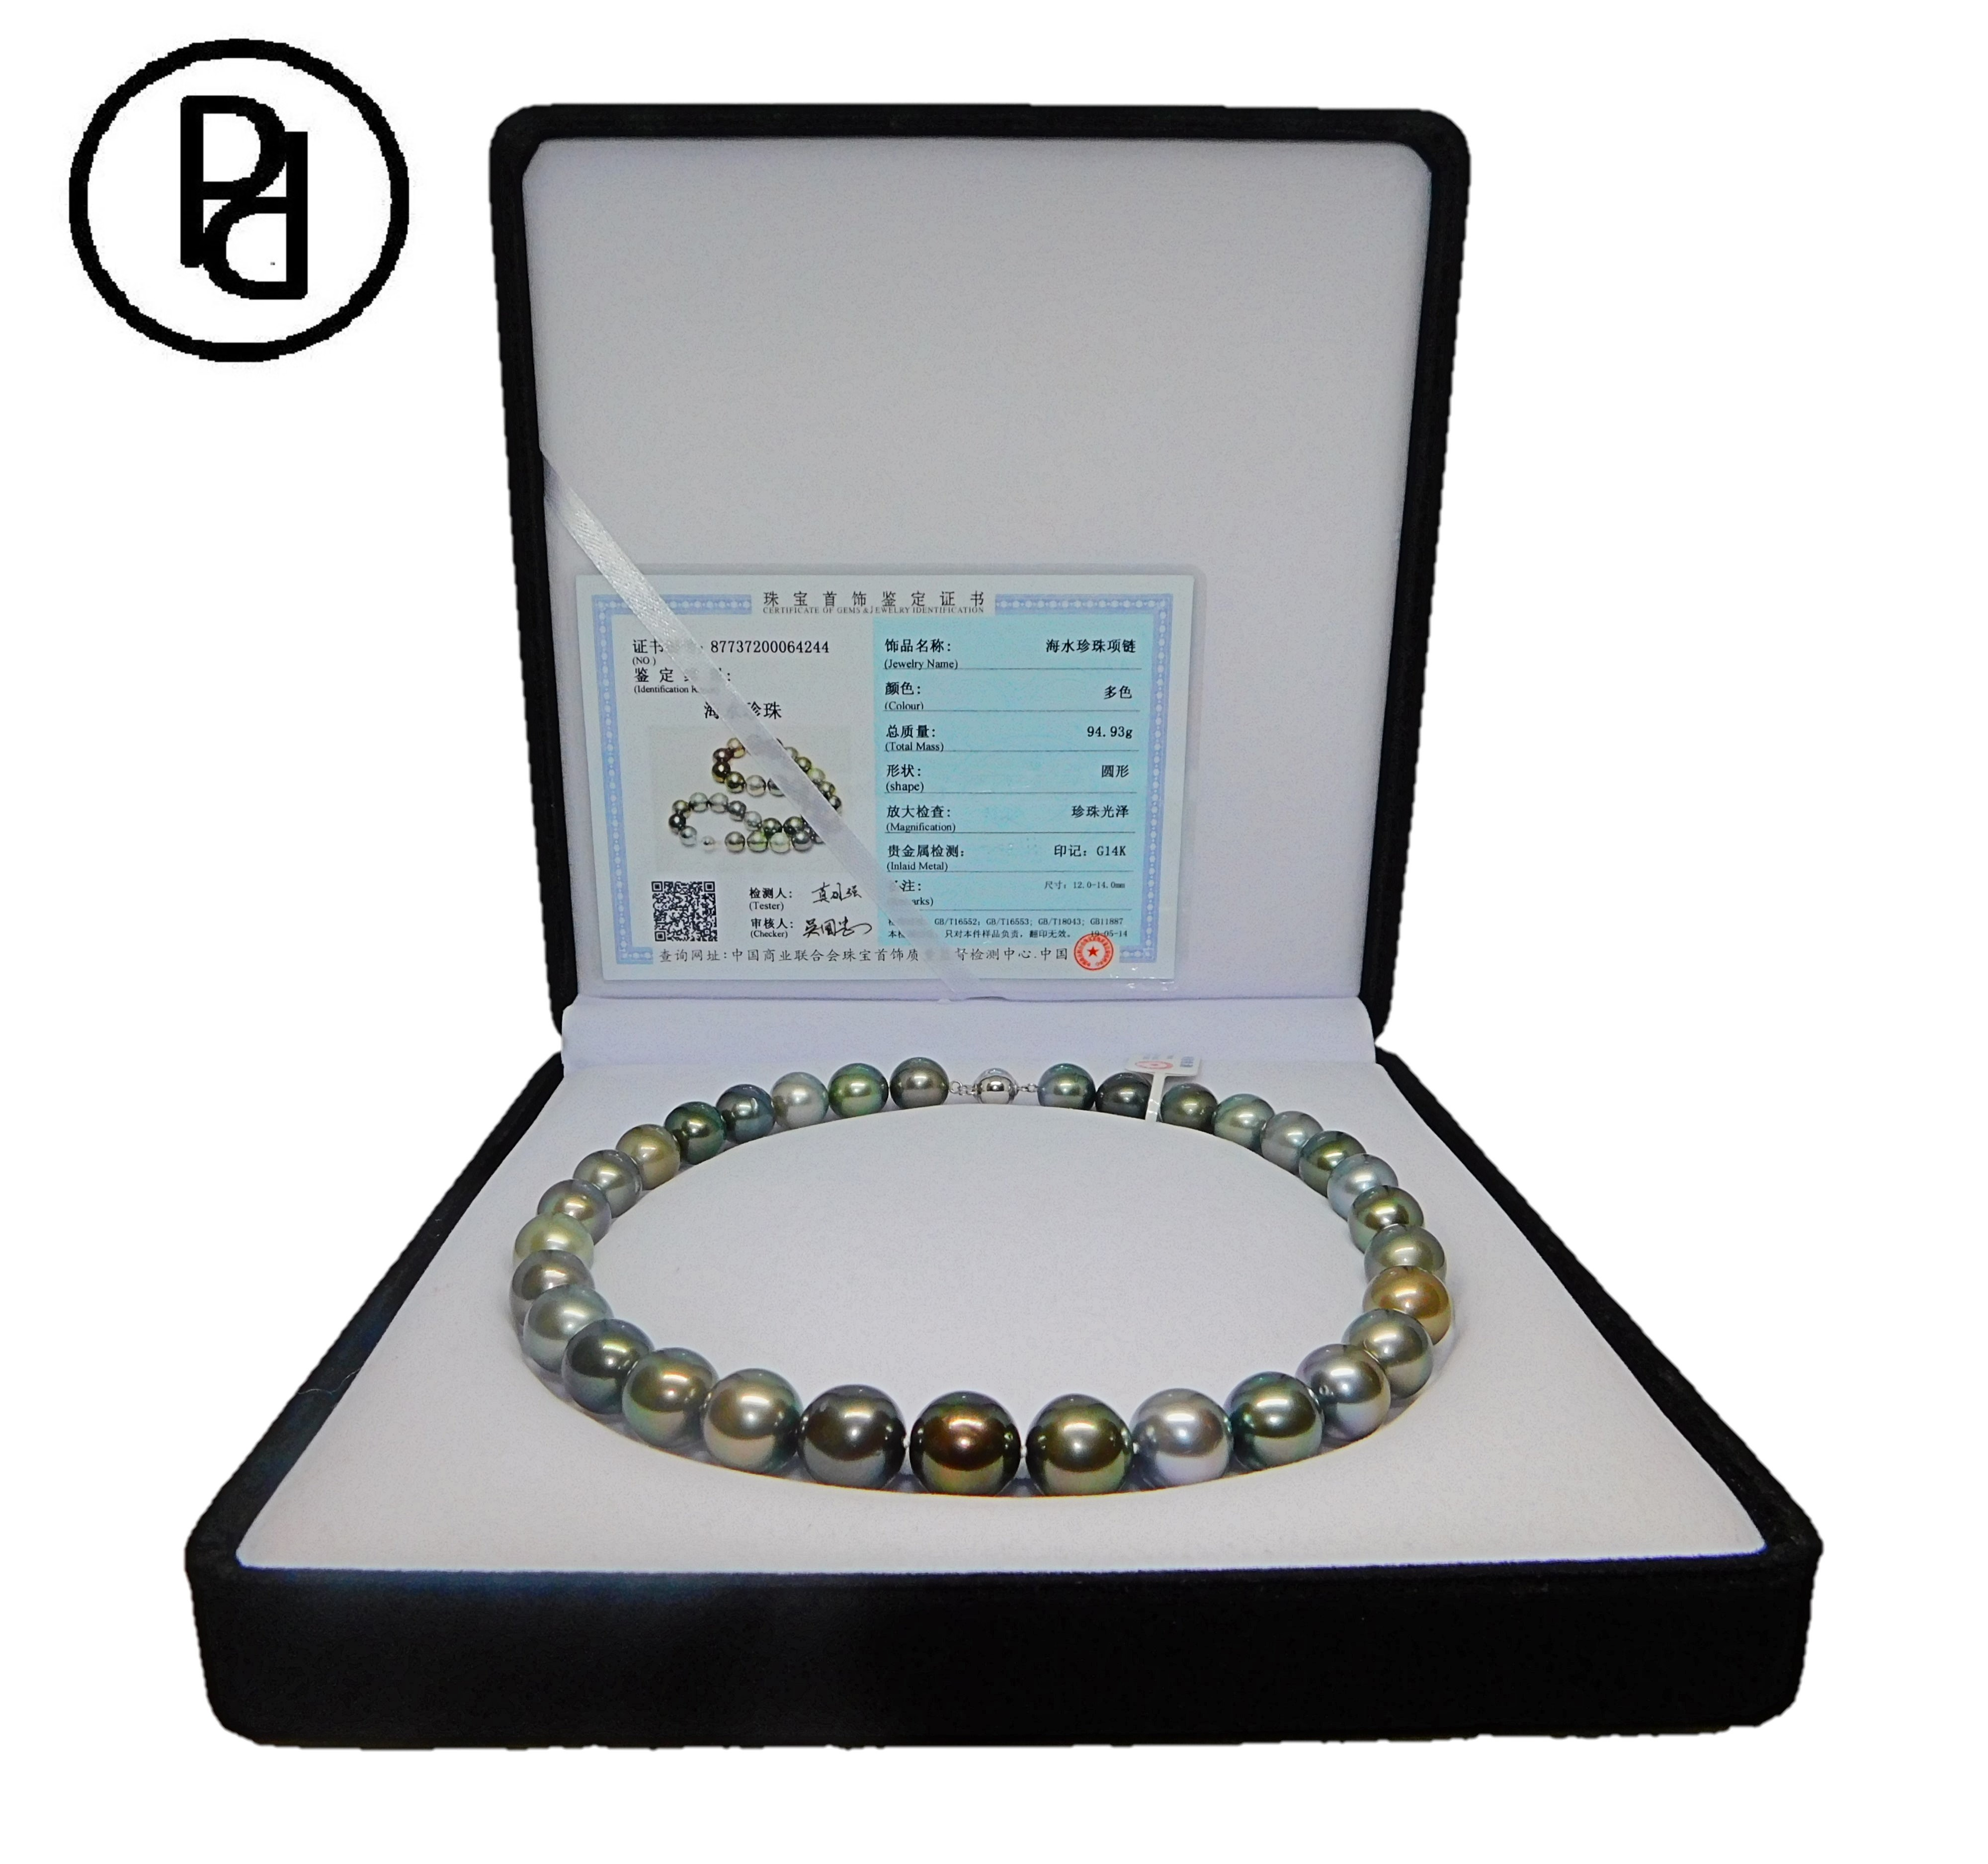 This elegant necklace features 10.0-11.0mm Tahitian South Sea pearls, handpicked for their luminous luster